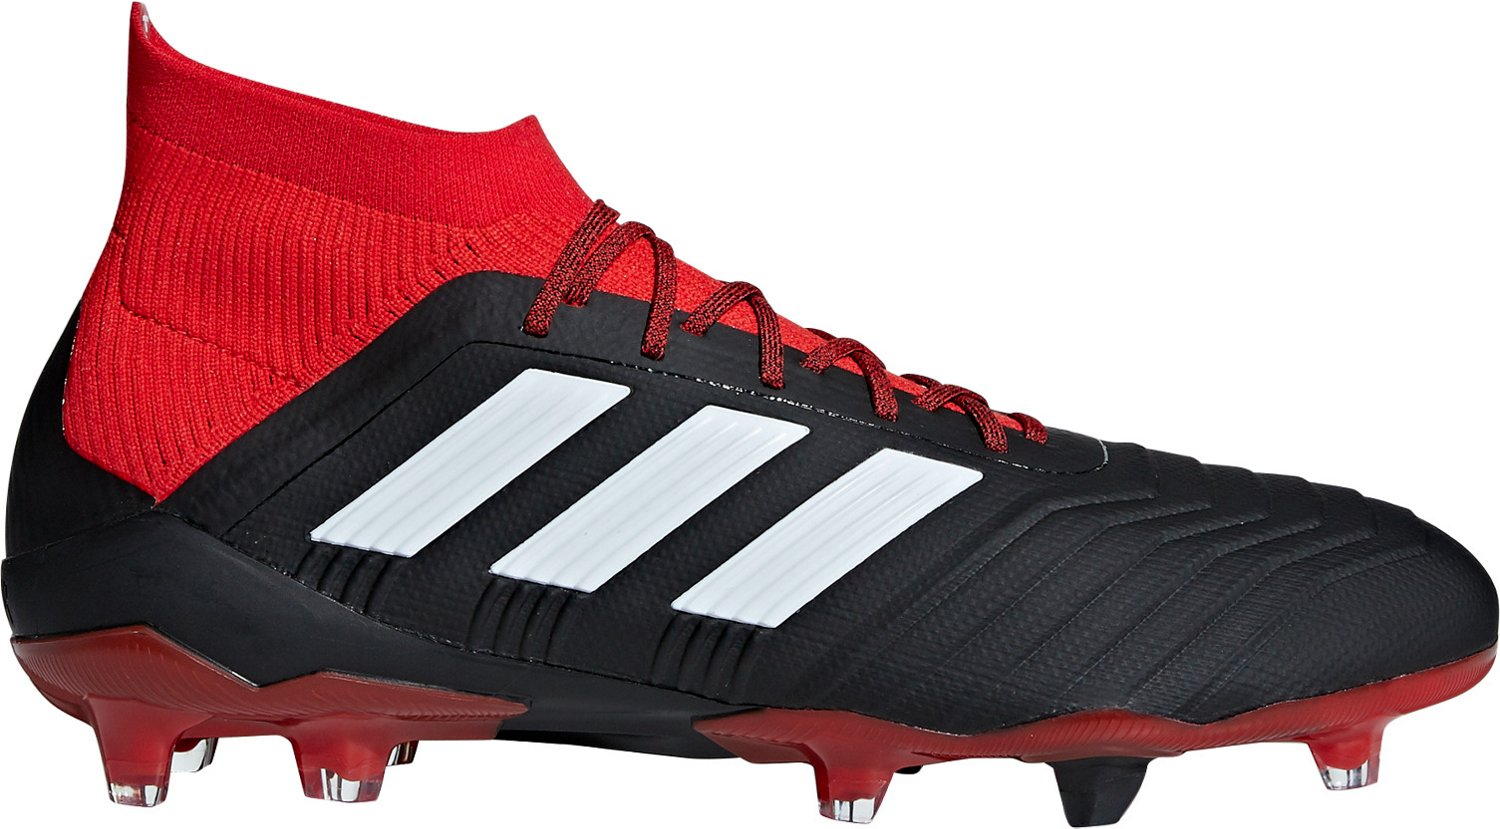 abffef6d Display product reviews for adidas Men's Predator 18.1 Firm Ground Soccer  Cleats